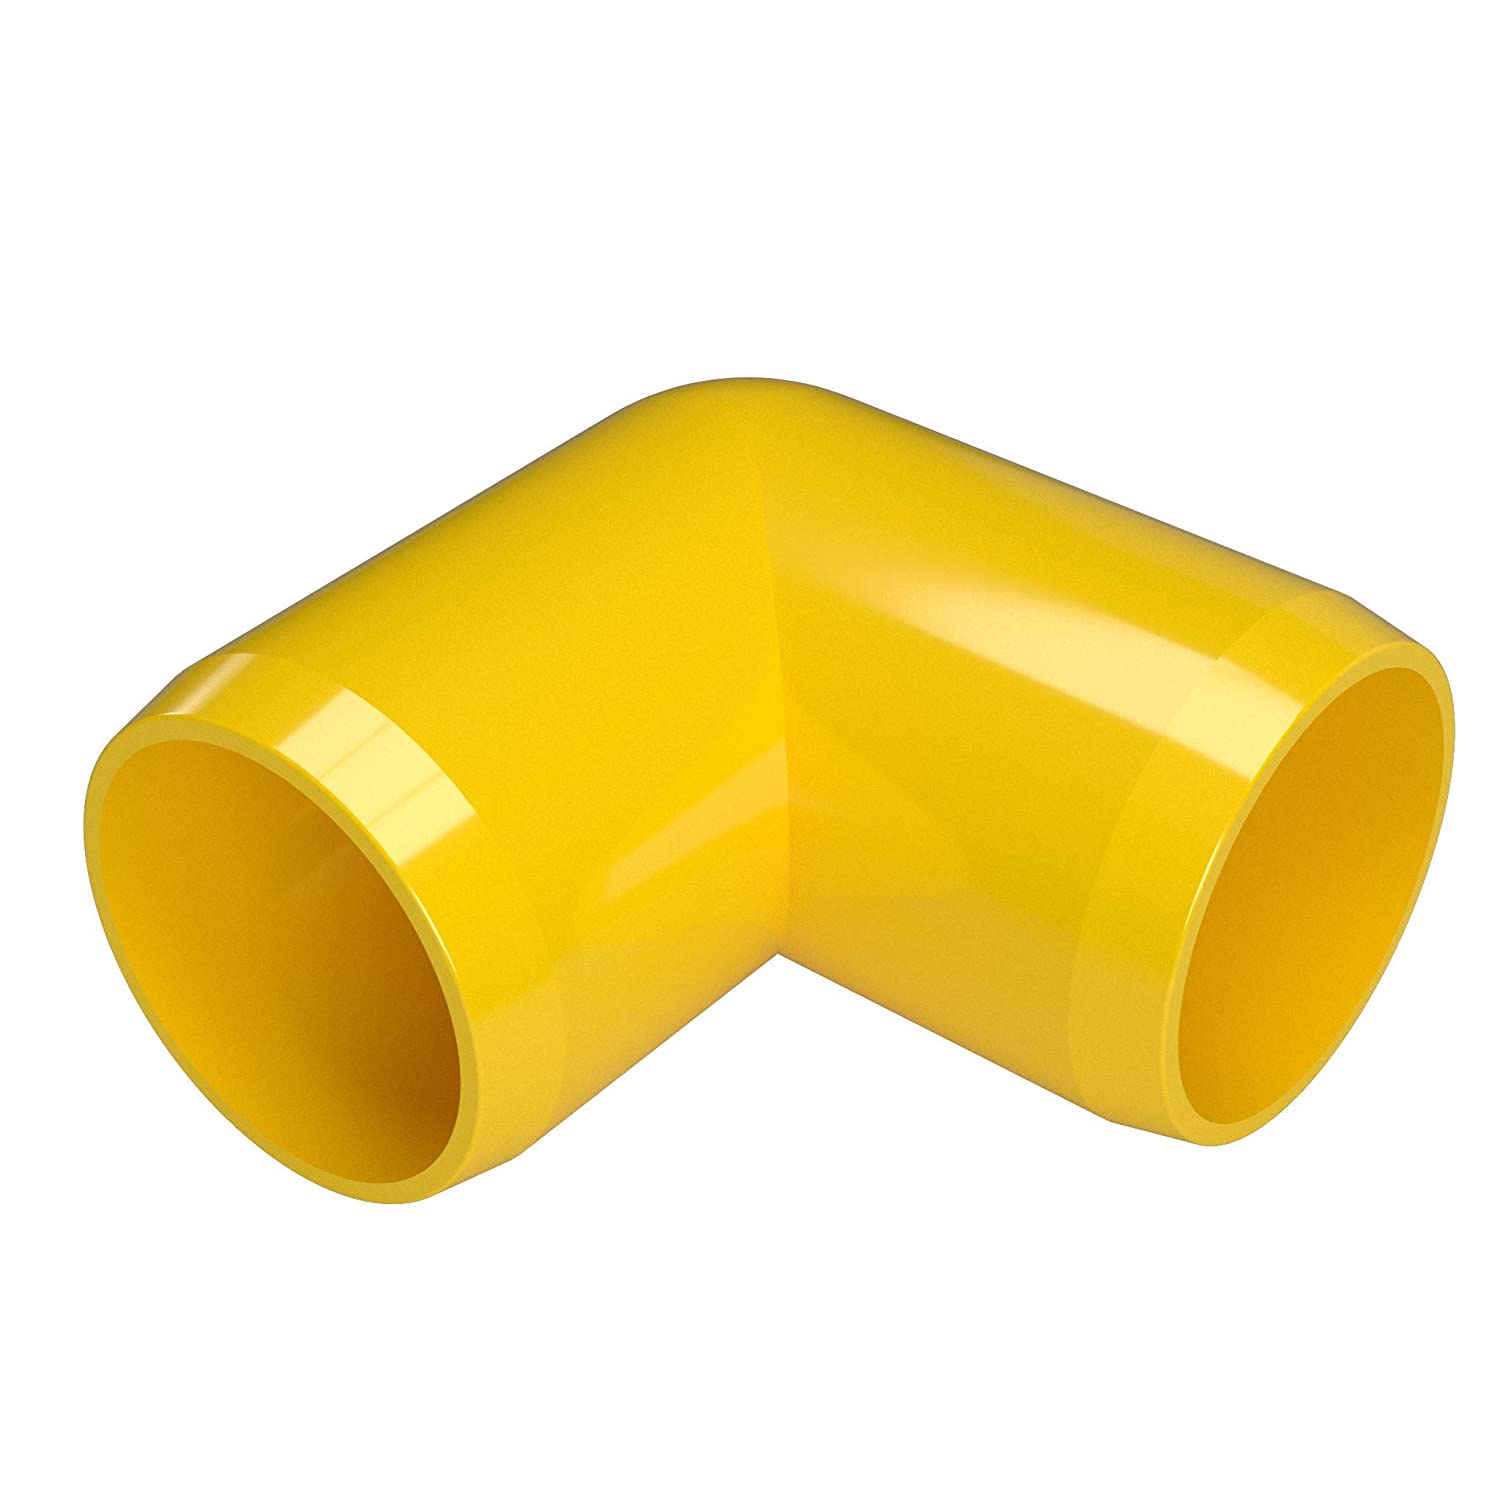 FORMUFIT F00190E-YE-4 90 Degree Elbow PVC Fitting, Furniture Grade, 1' Size, Yellow (Pack of 4) 1 Size